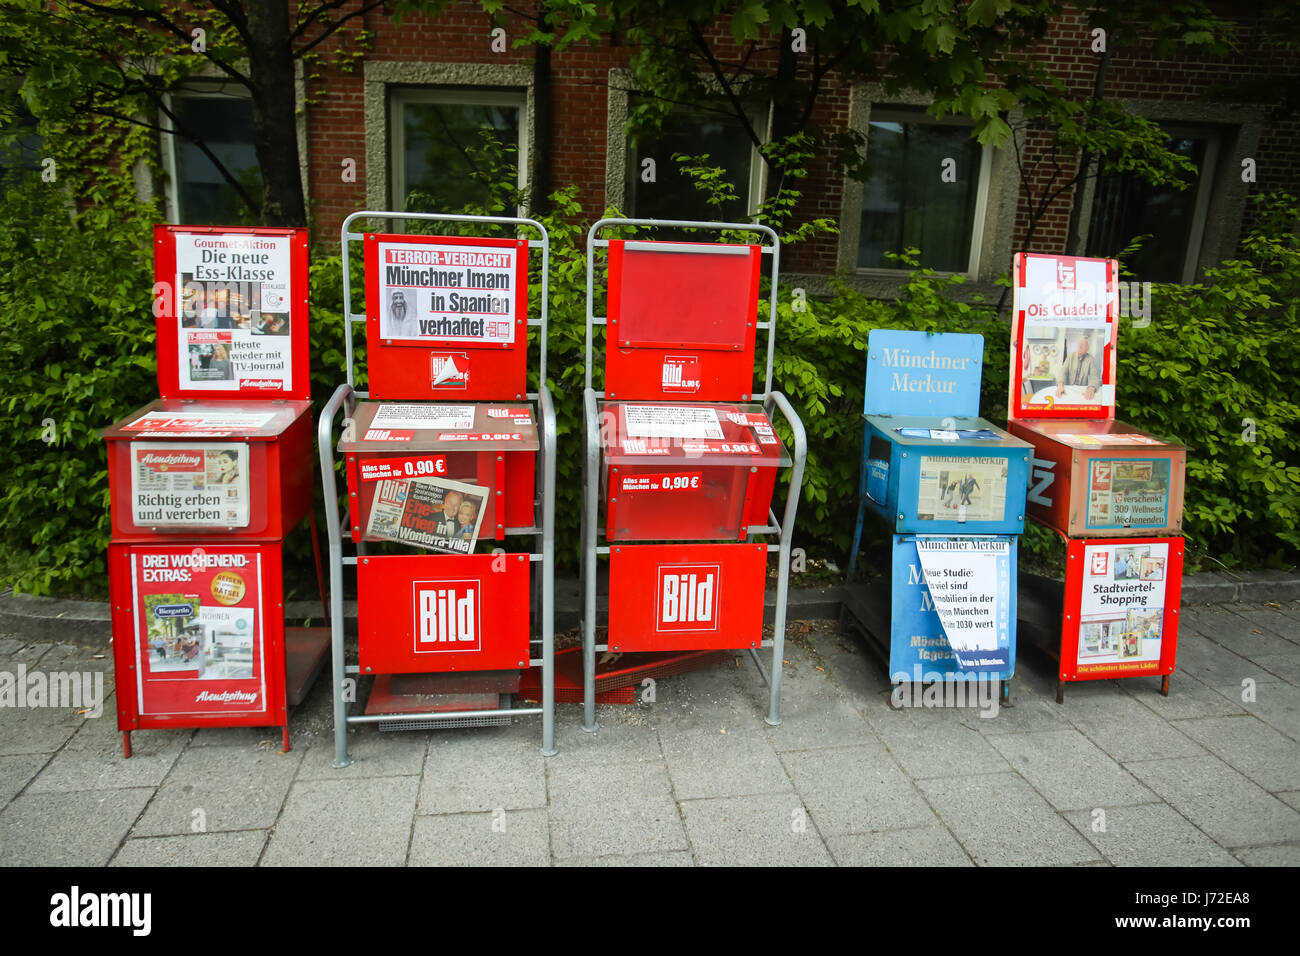 MUNICH, GERMANY - MAY 6, 2017 : Newspaper vending machines with tabloid Bild in Munich, Germany. - Stock Image